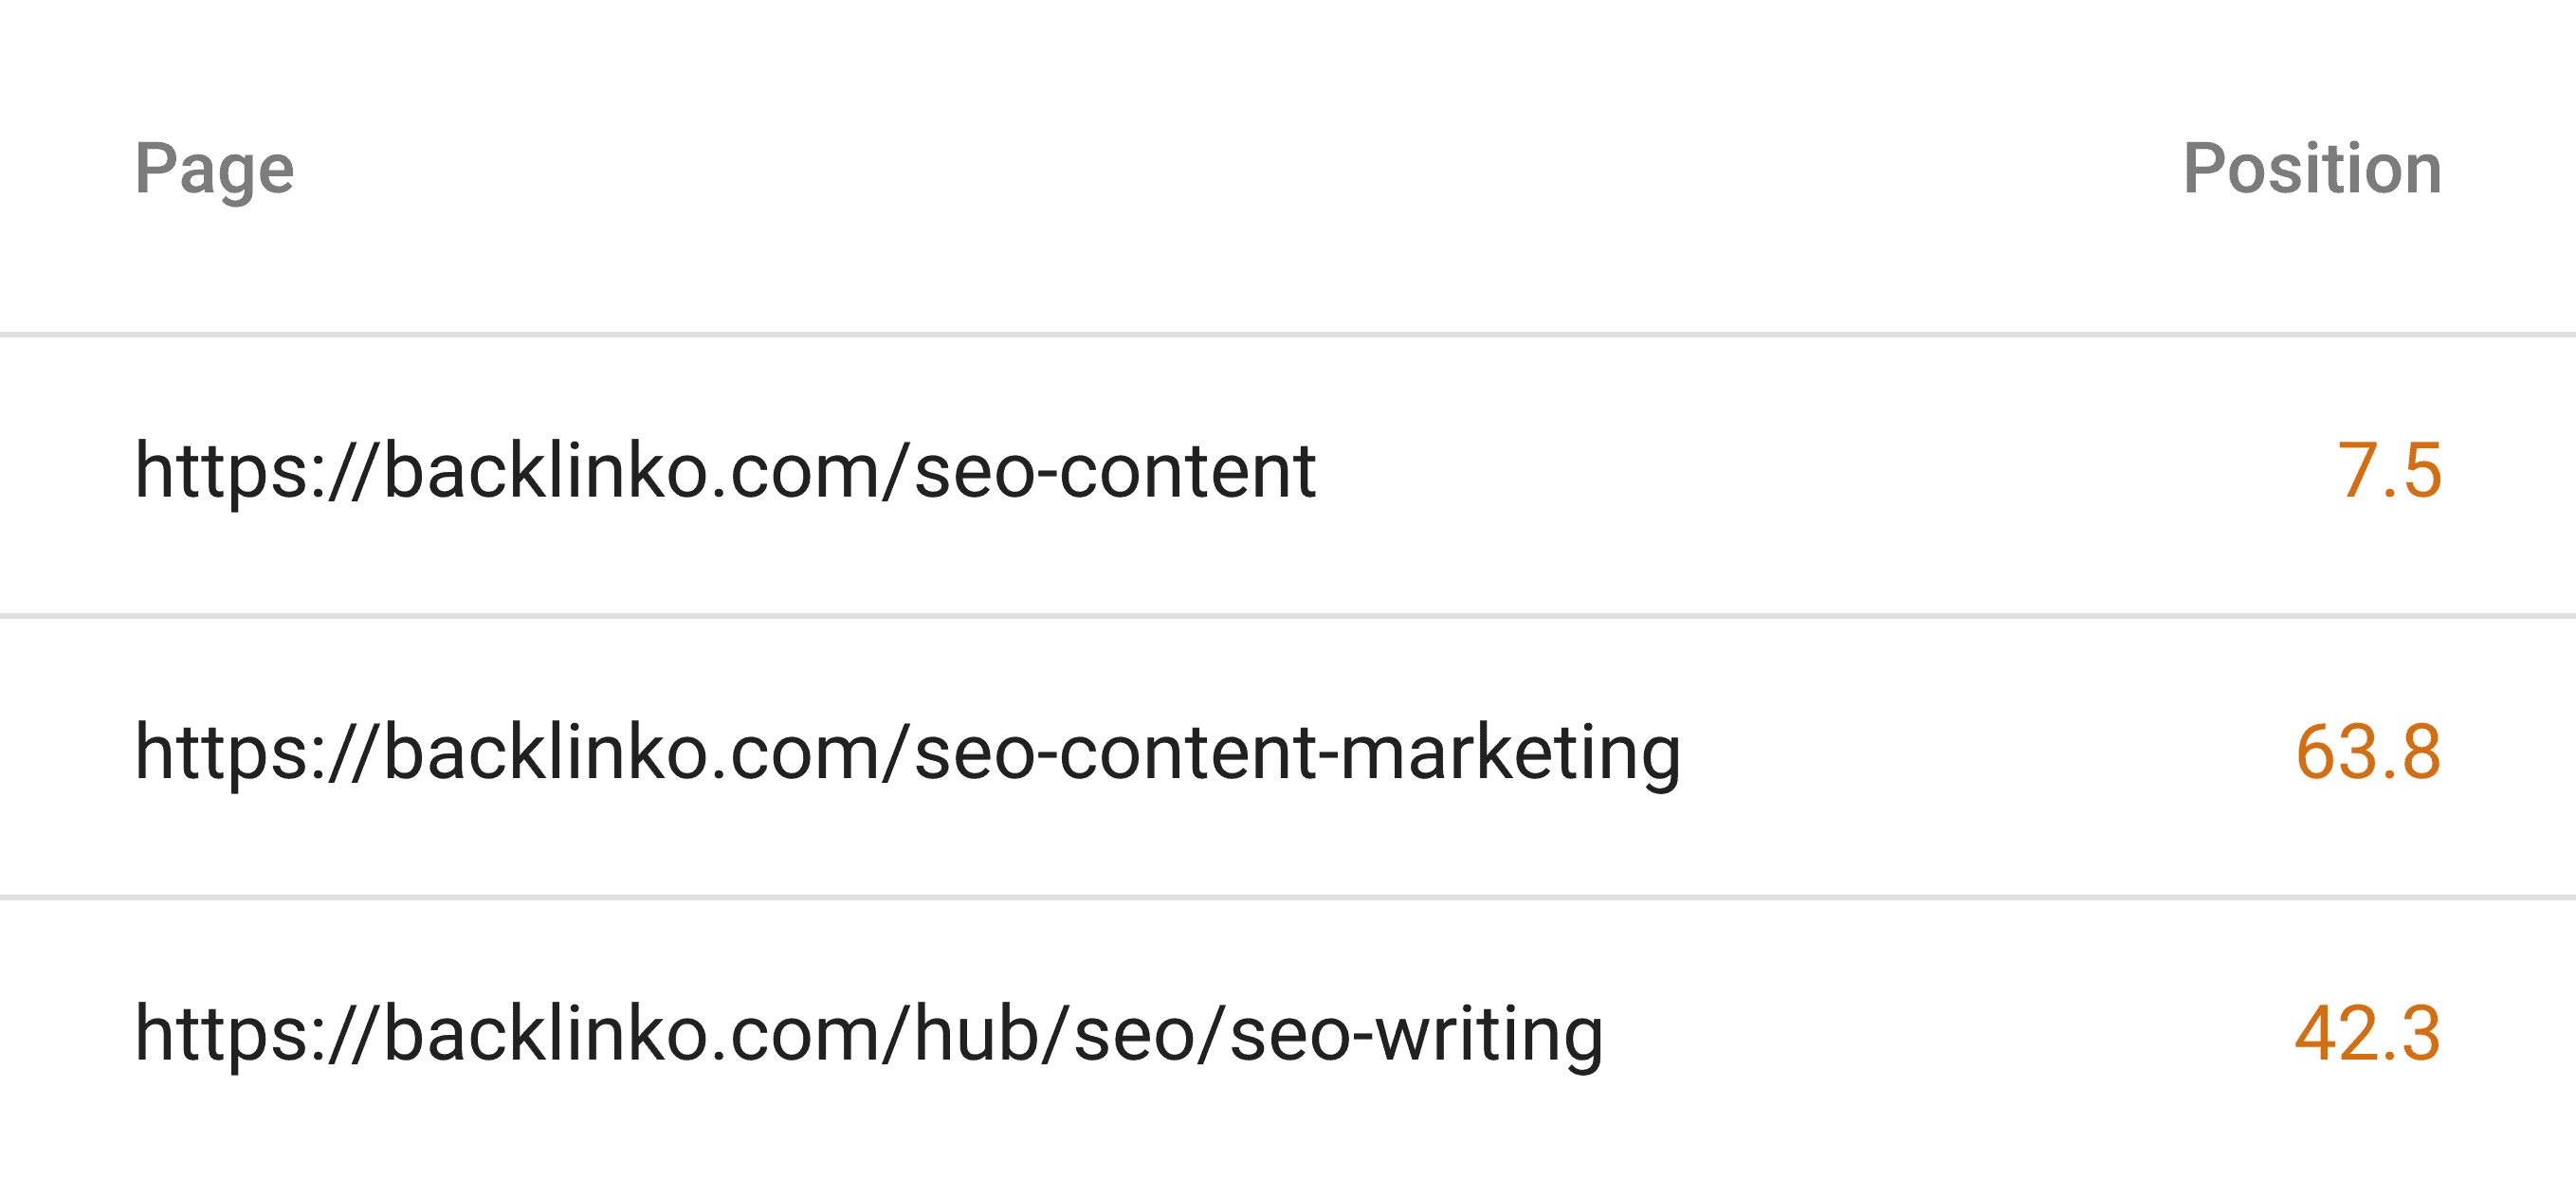 Google search console – Pages for query